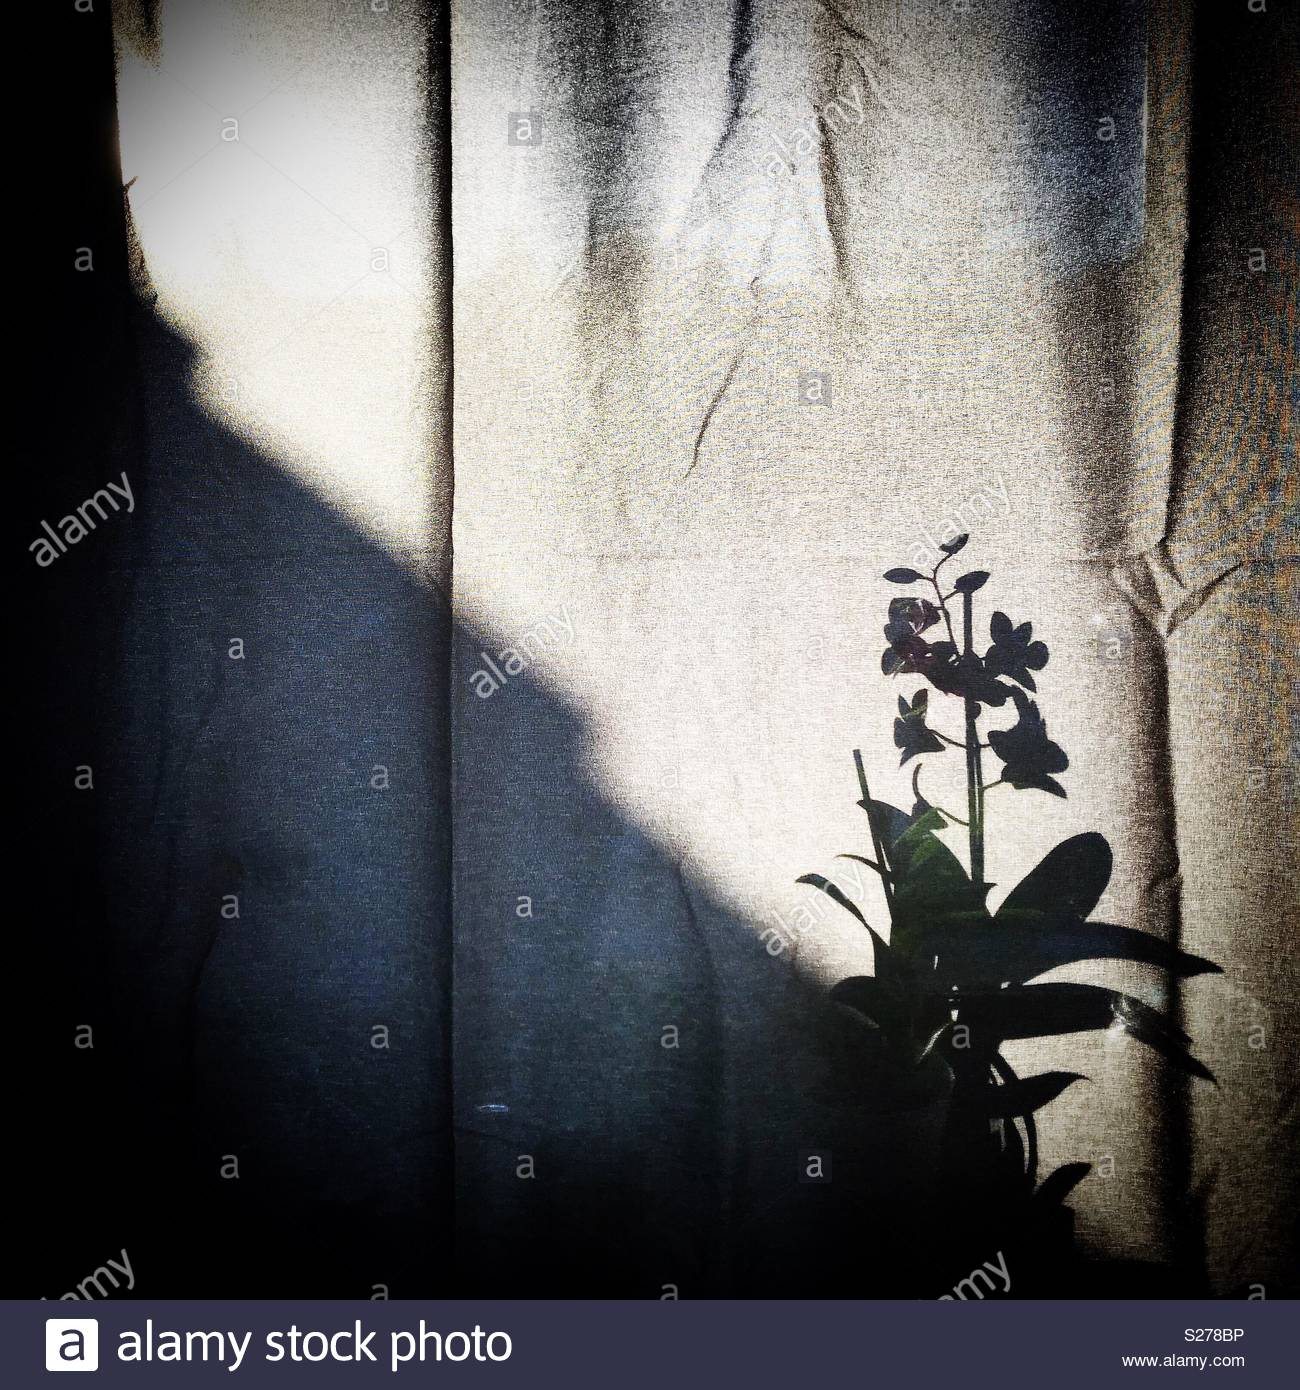 Flower shadow on curtain. - Stock Image